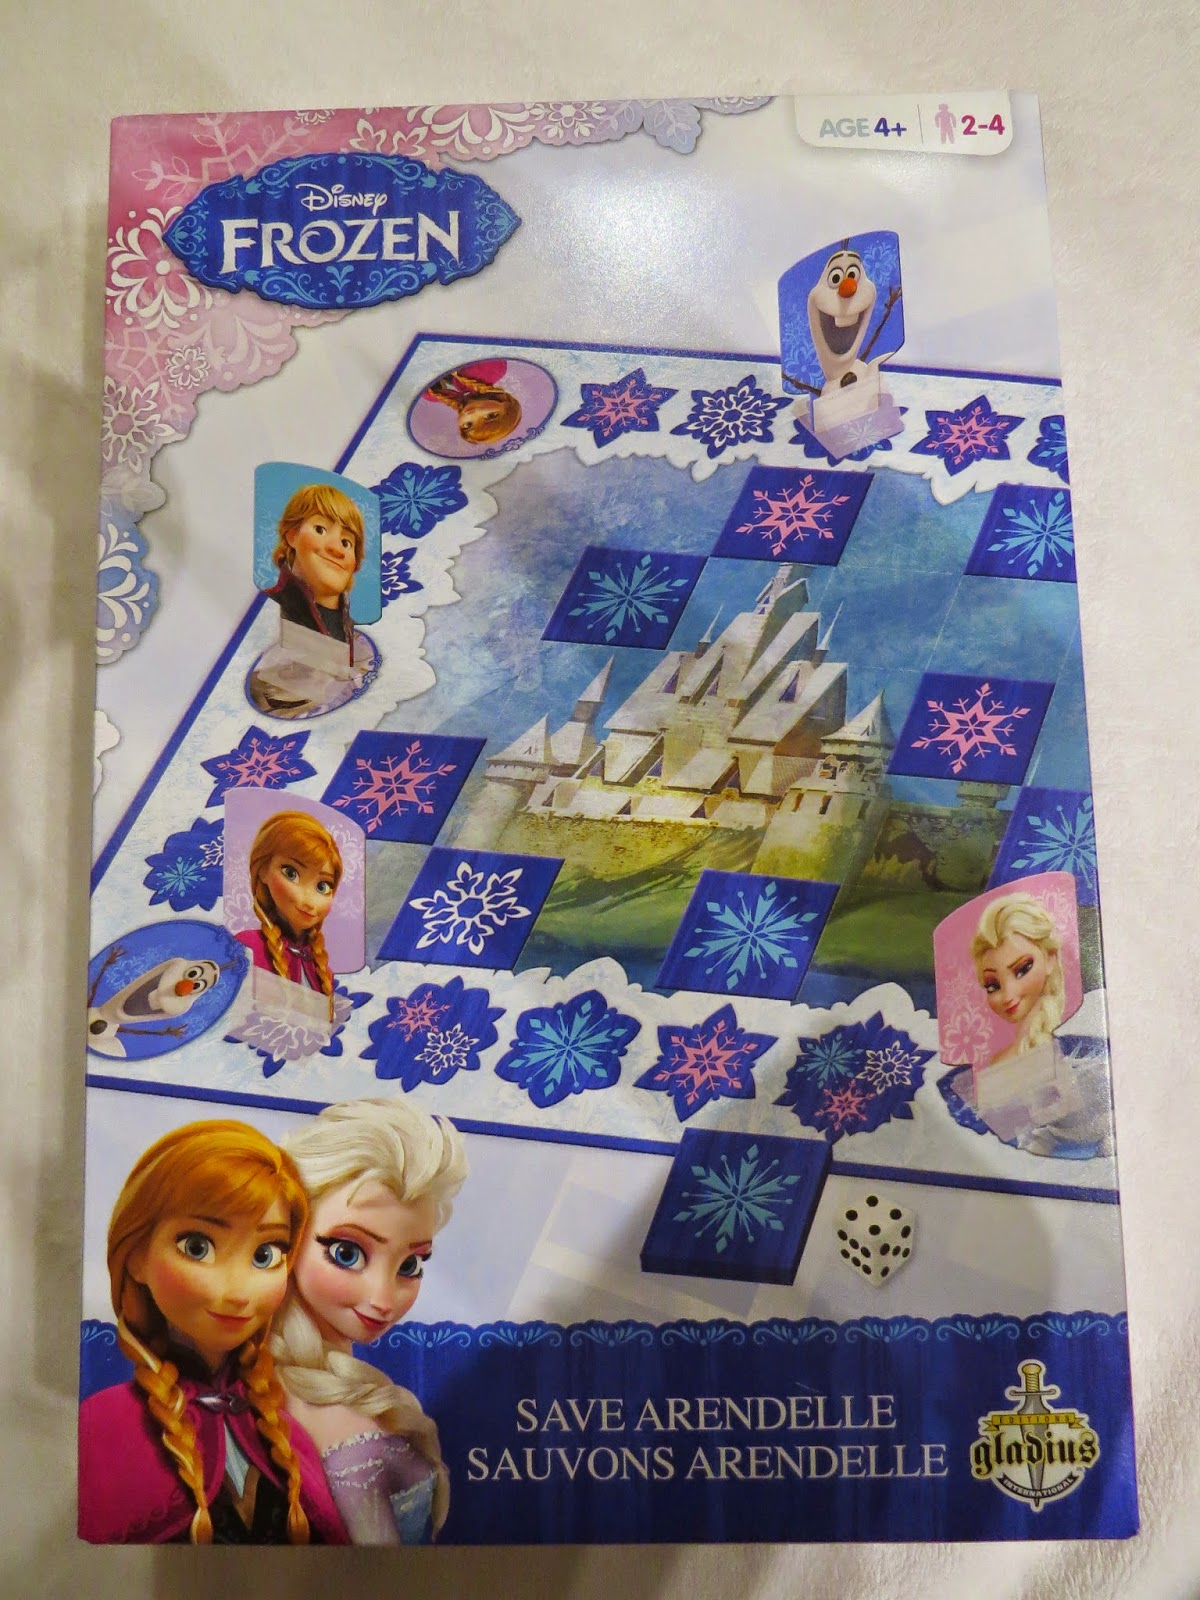 http://dealsandfree.blogspot.ca/2014/12/gift-guide-help-save-arendelle-together.html